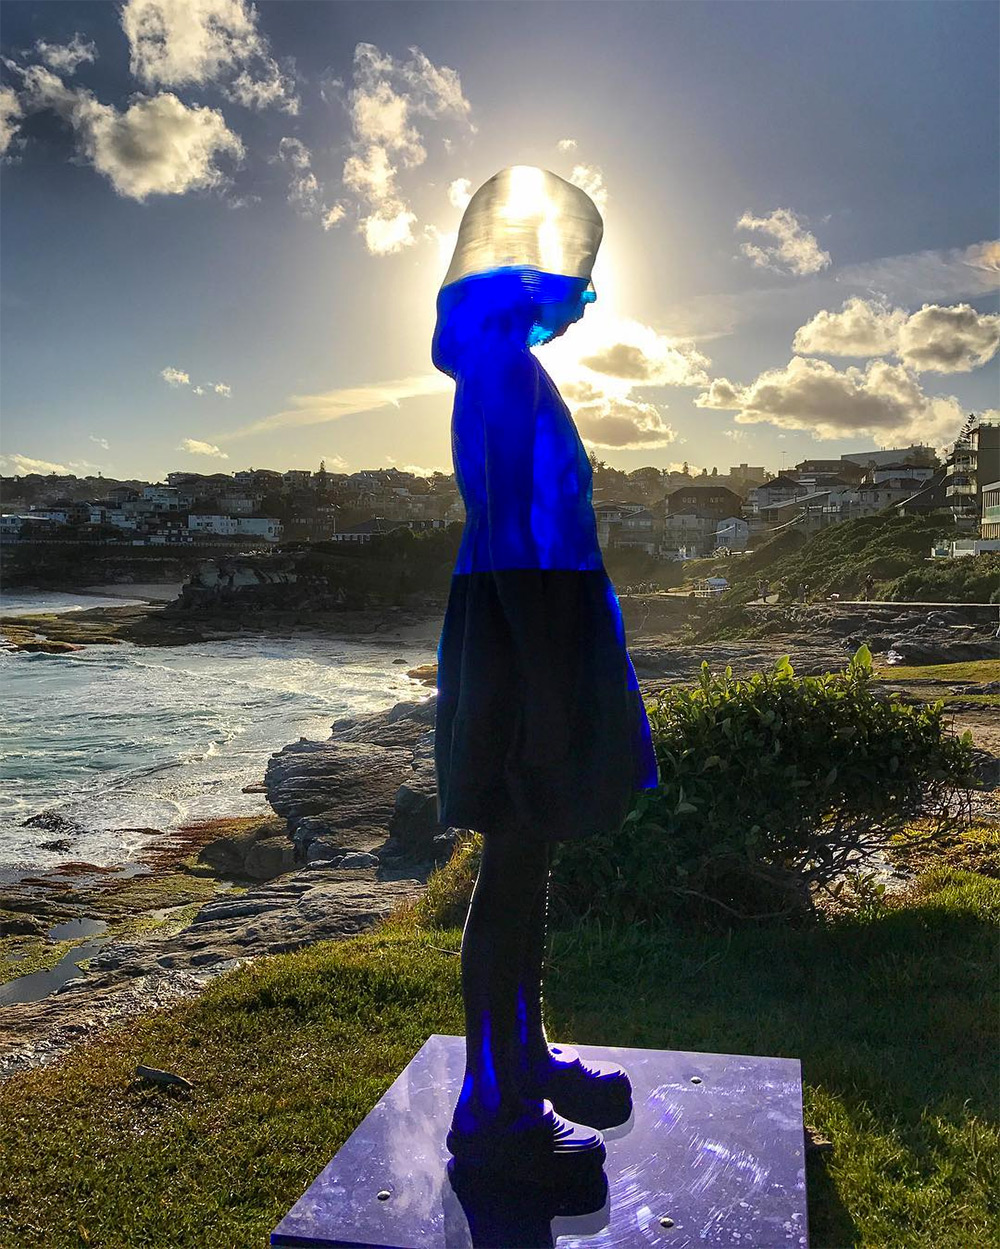 Alessandra Rossi, Untitled Coral. Sculpture by the Sea, Bondi 2016. Photo by Grace Sui .